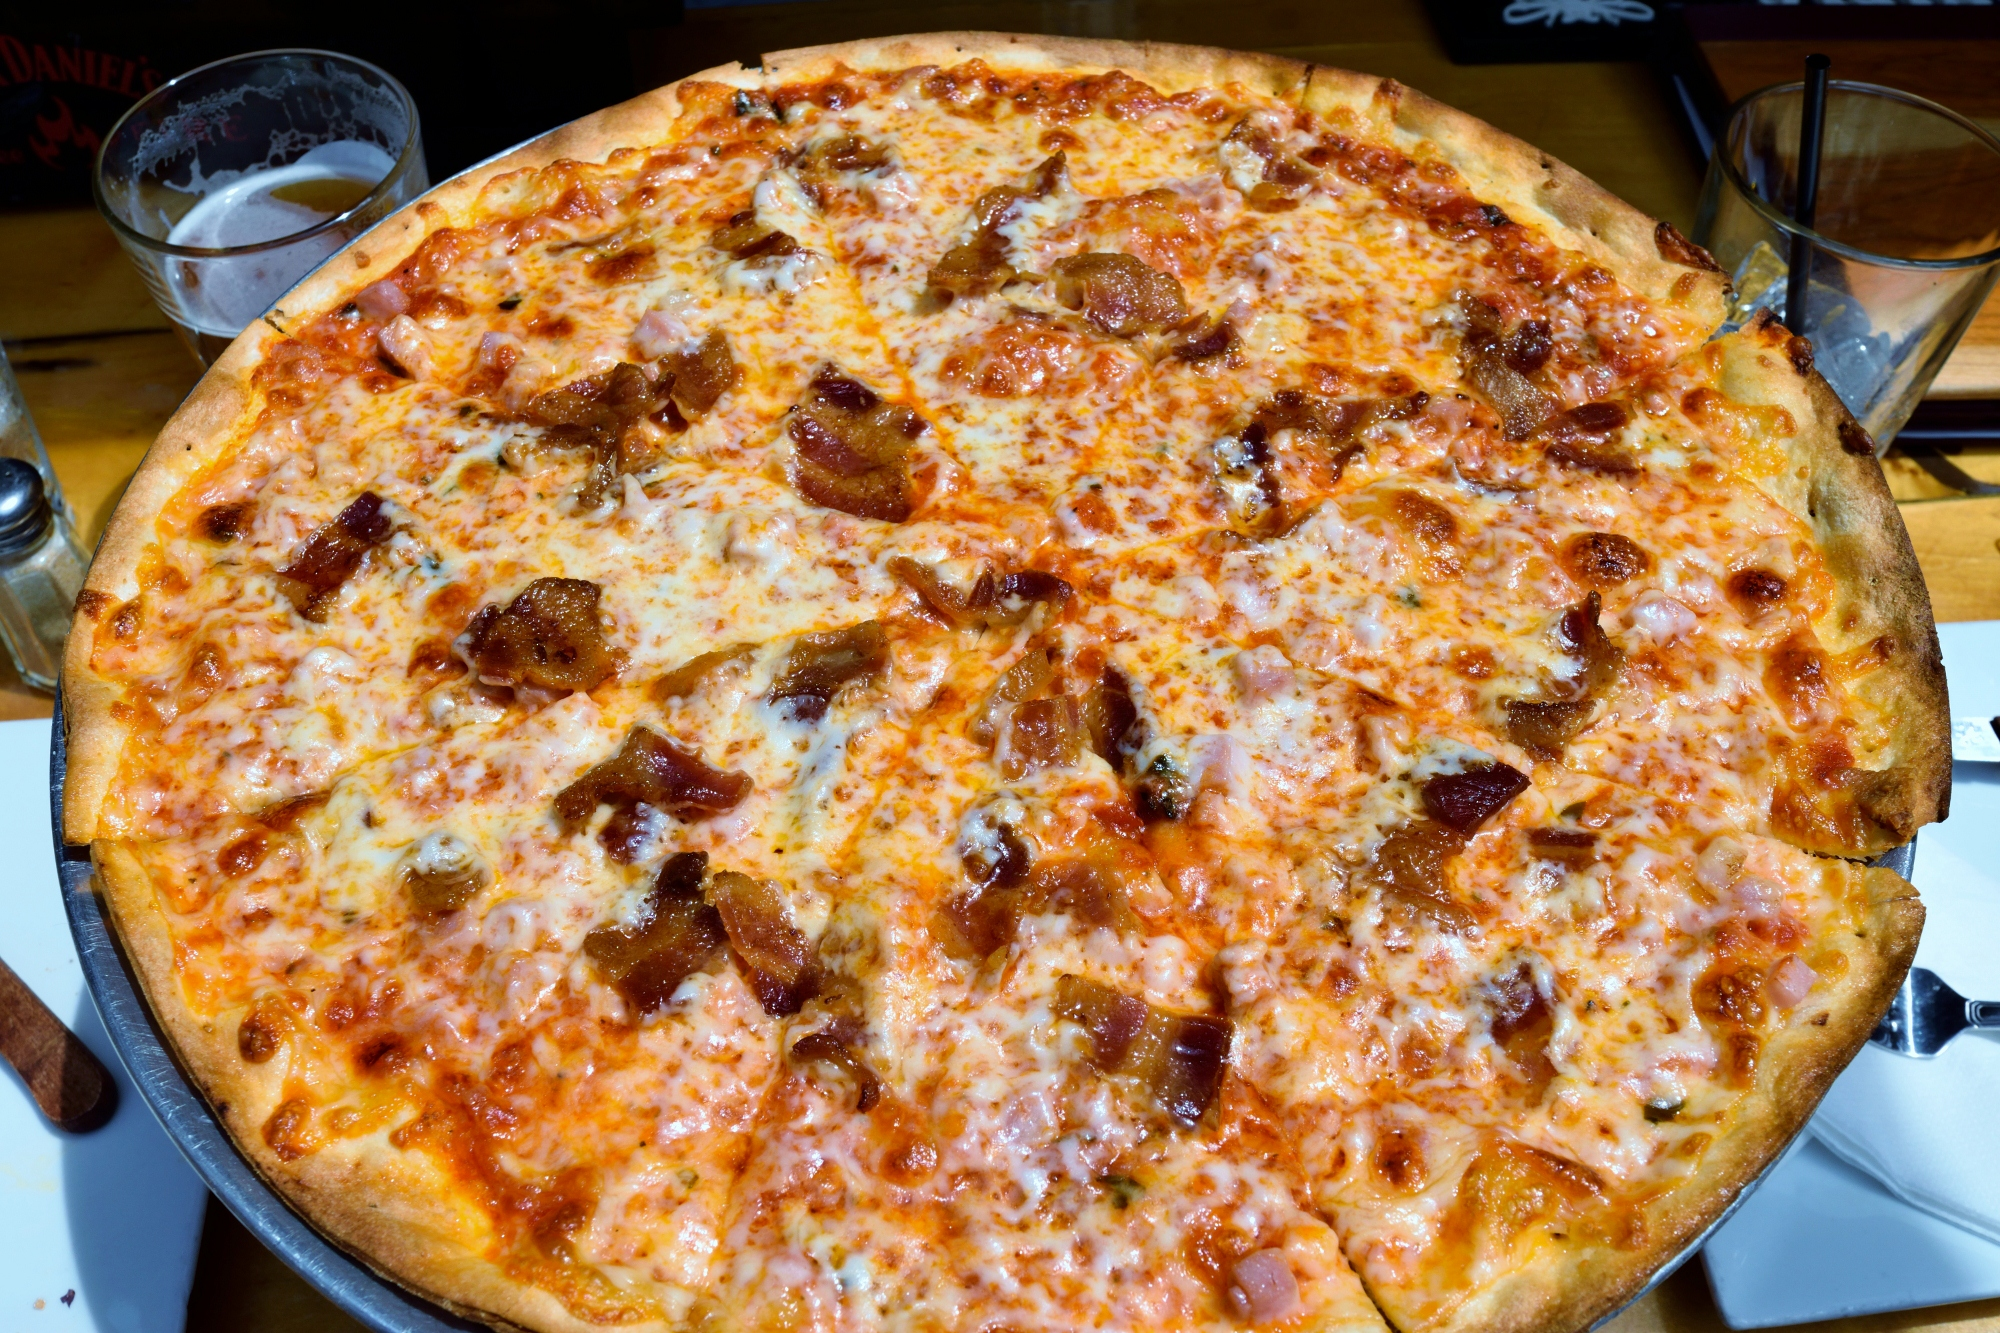 Applewood Bacon and Ham pizza. It's got bacon, do you need another reason?